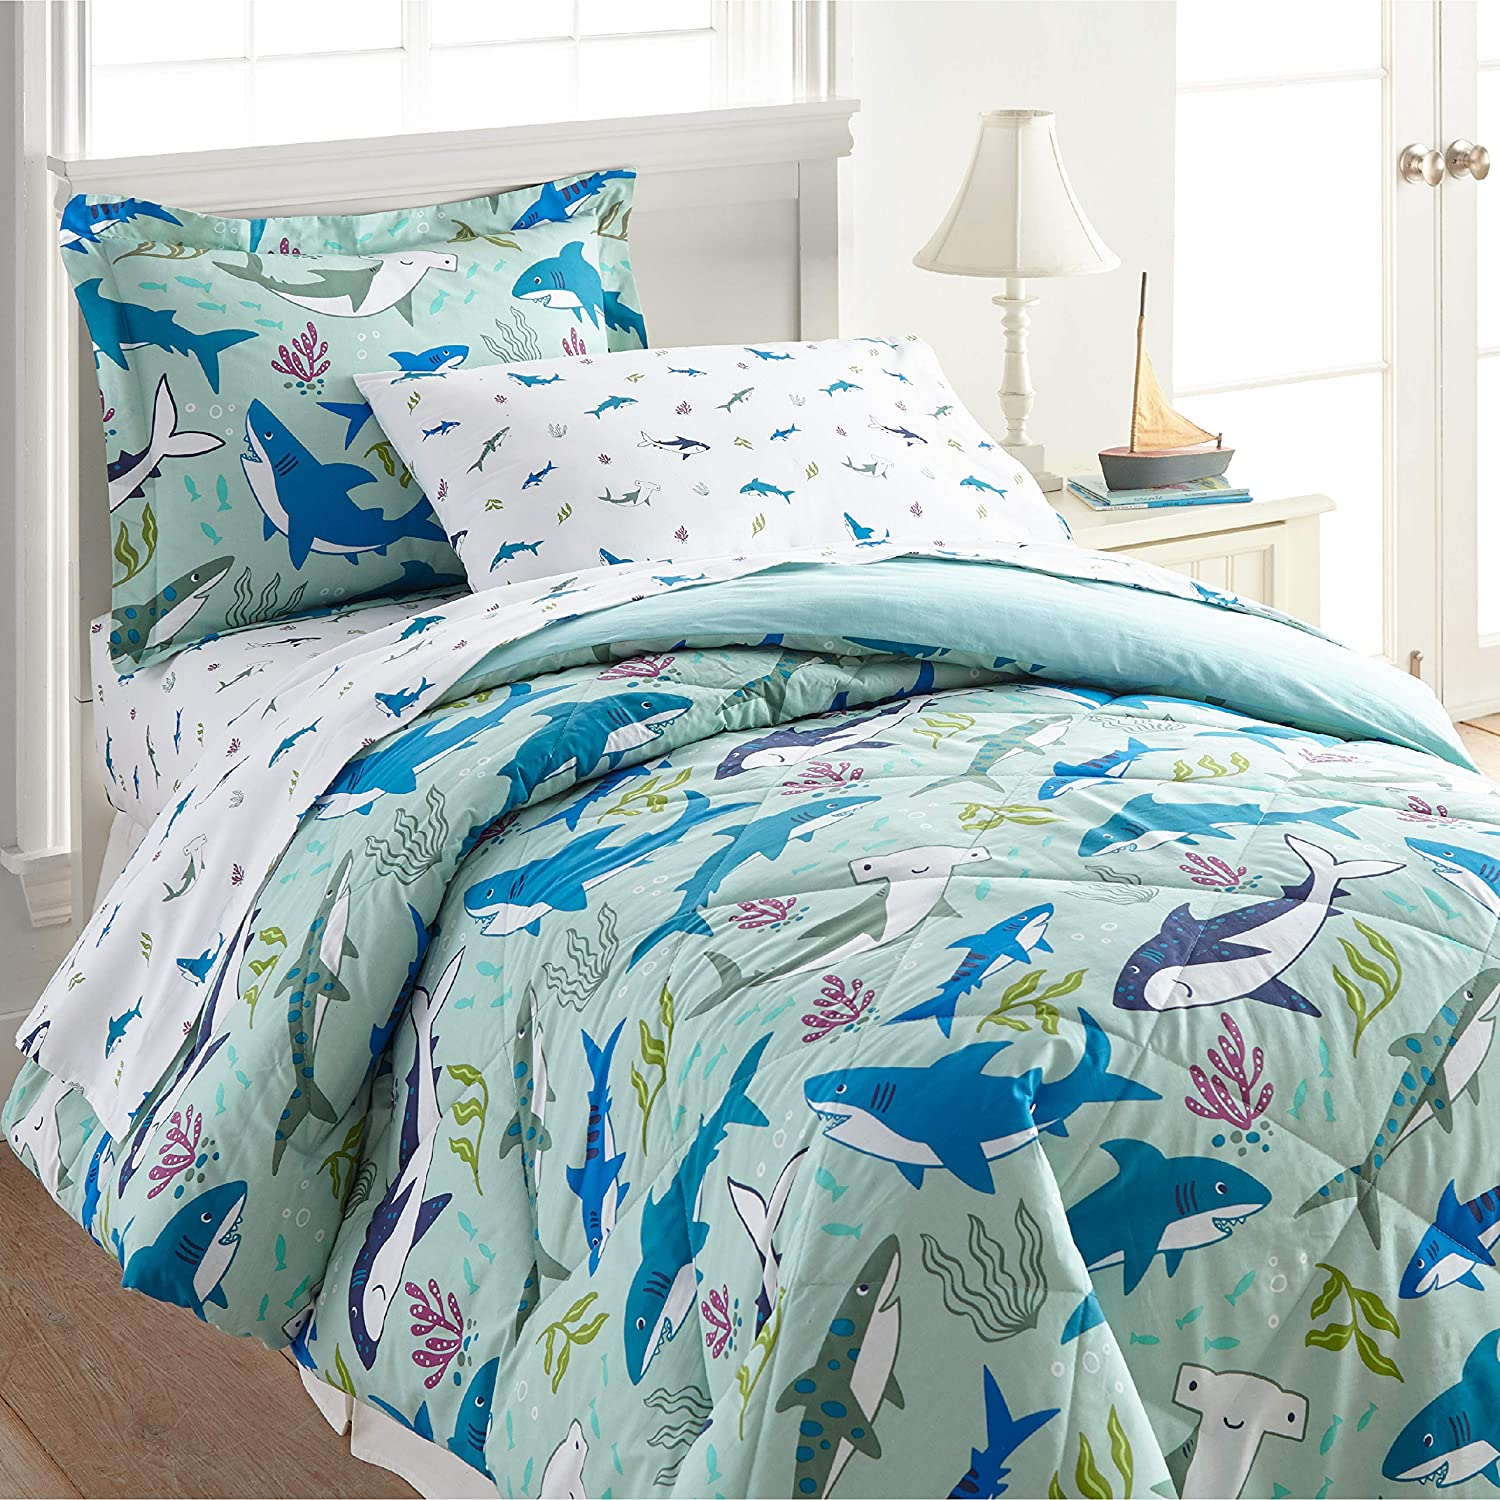 Wildkin 100% Cotton 5 Piece Twin Bed-in-A-Bag, Includes Comforter, Flat Sheet, Fitted Sheet, Pillowcase and Embroidered Sham, Certified Oeko-TEX Standard 100, BPA-Free, Olive Kids (Shark Attack)